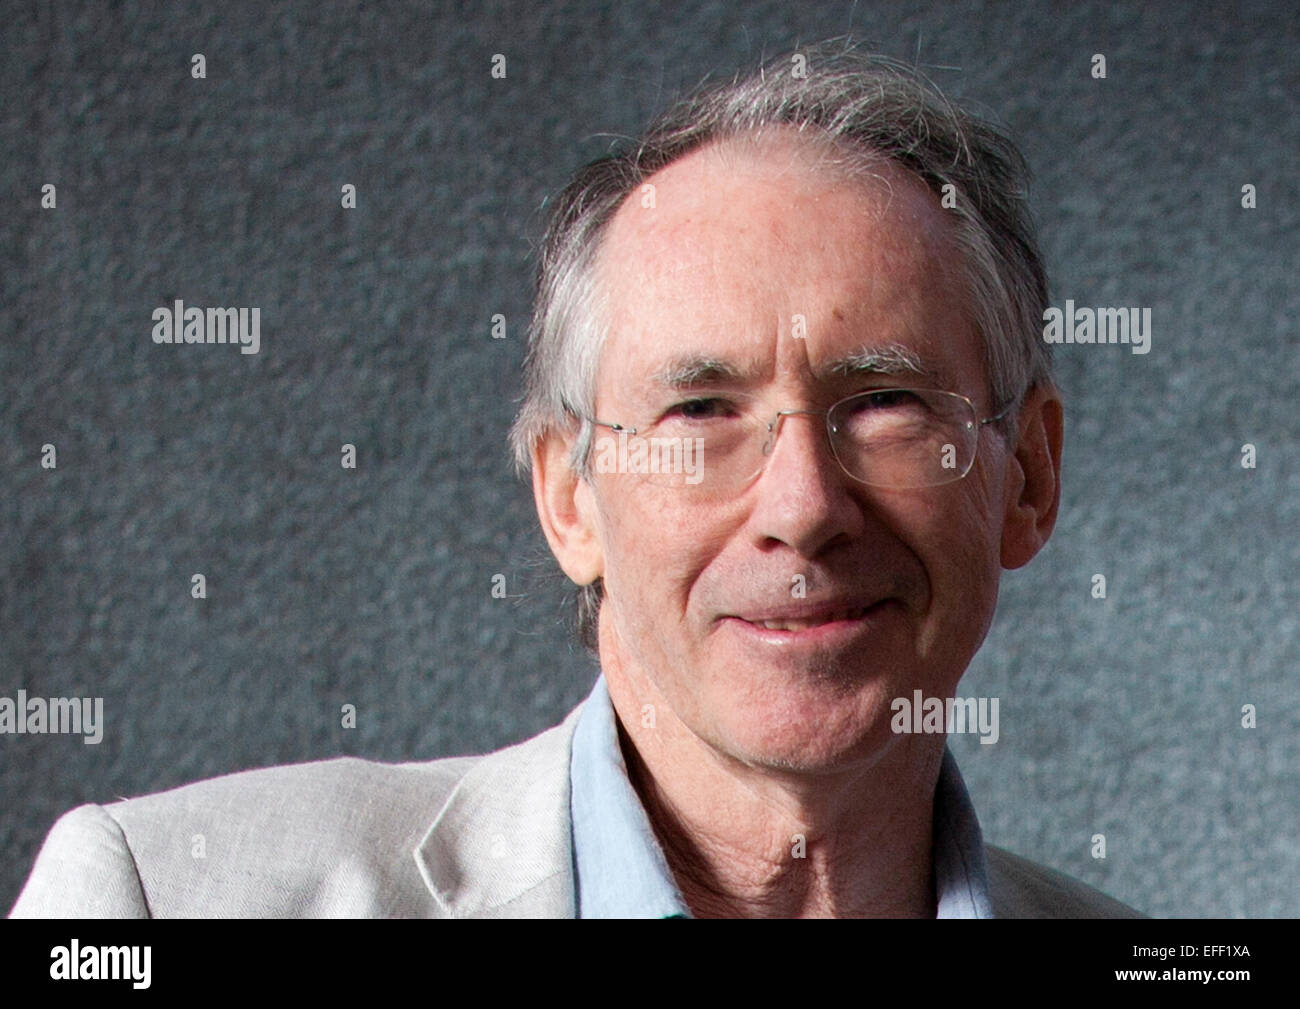 A Portrait Of Ian Mcewan At The Edinburgh International Book Festival 2012  In Charlotte Square Gardens Pic By Pako Mera